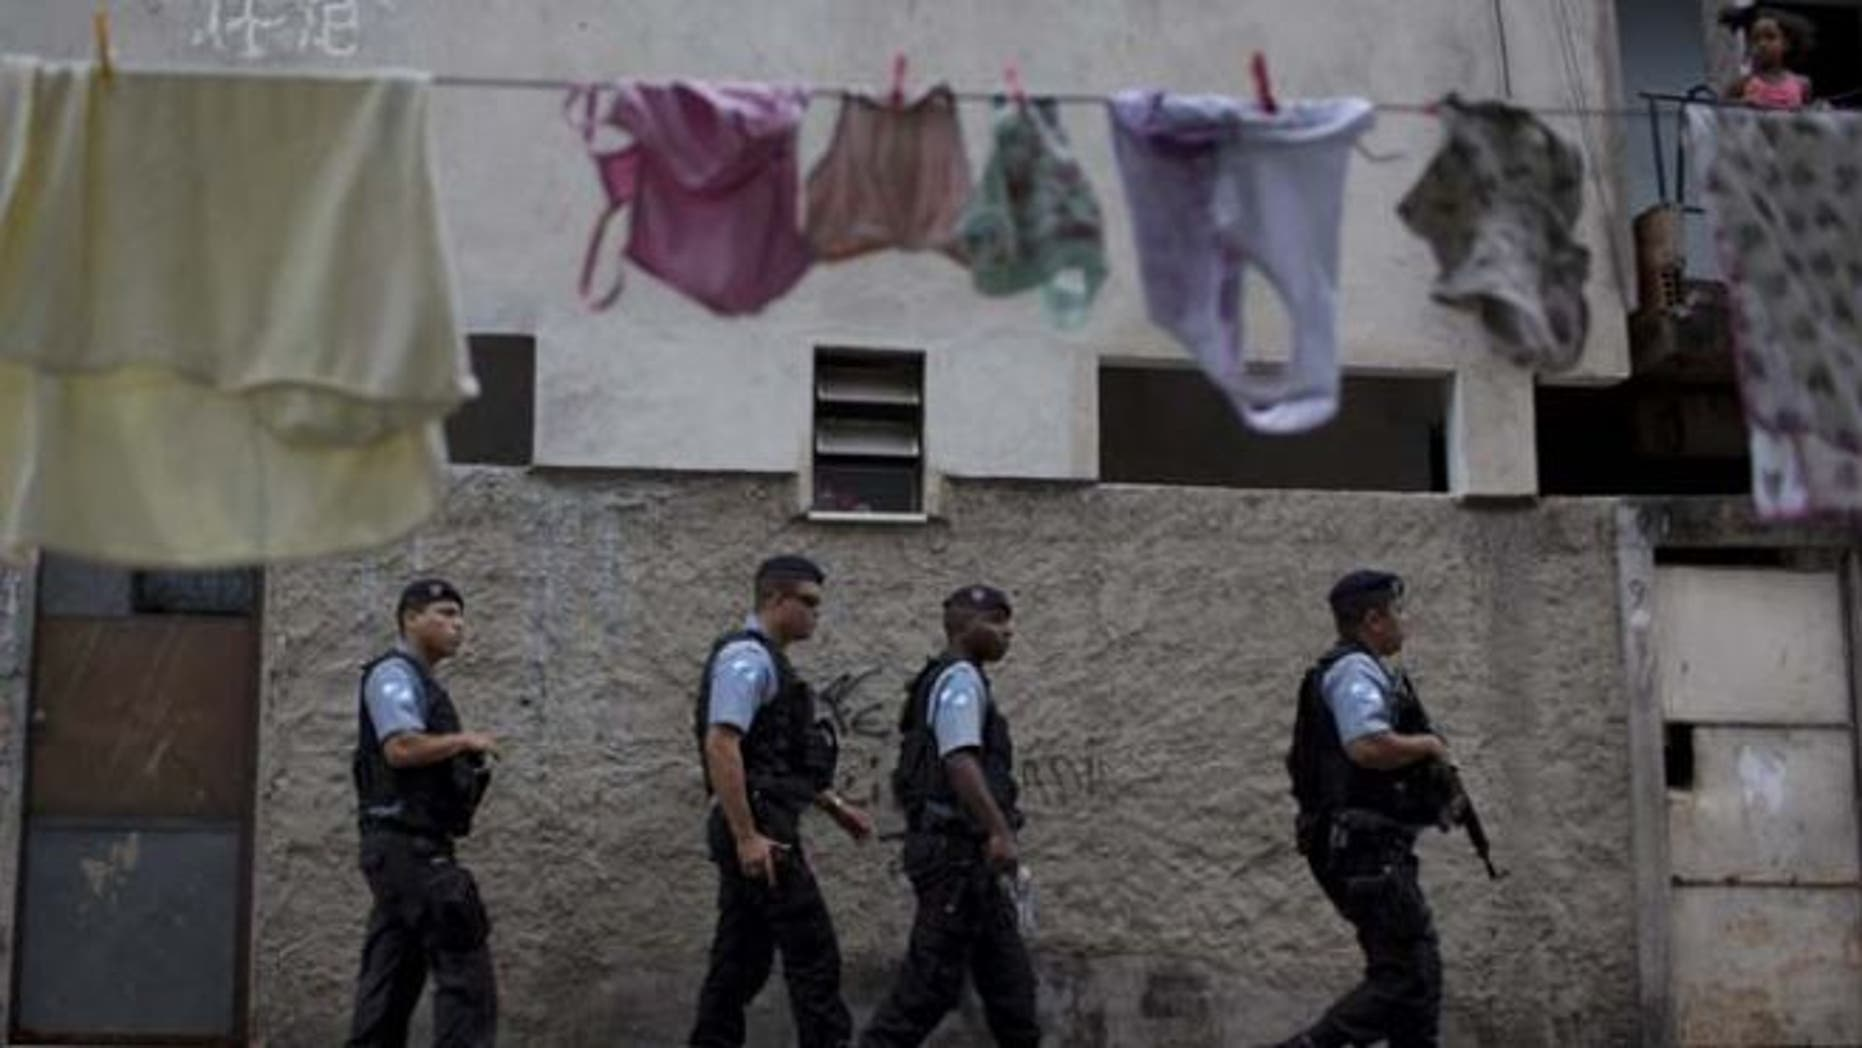 July 21, 2013: Policemen from the Pacifying Police Unit, or 'UPP', patrol in the Varginha area of the Manguinhos slum complex ahead of Pope Francis' visit to Rio de Janeiro, Brazil.